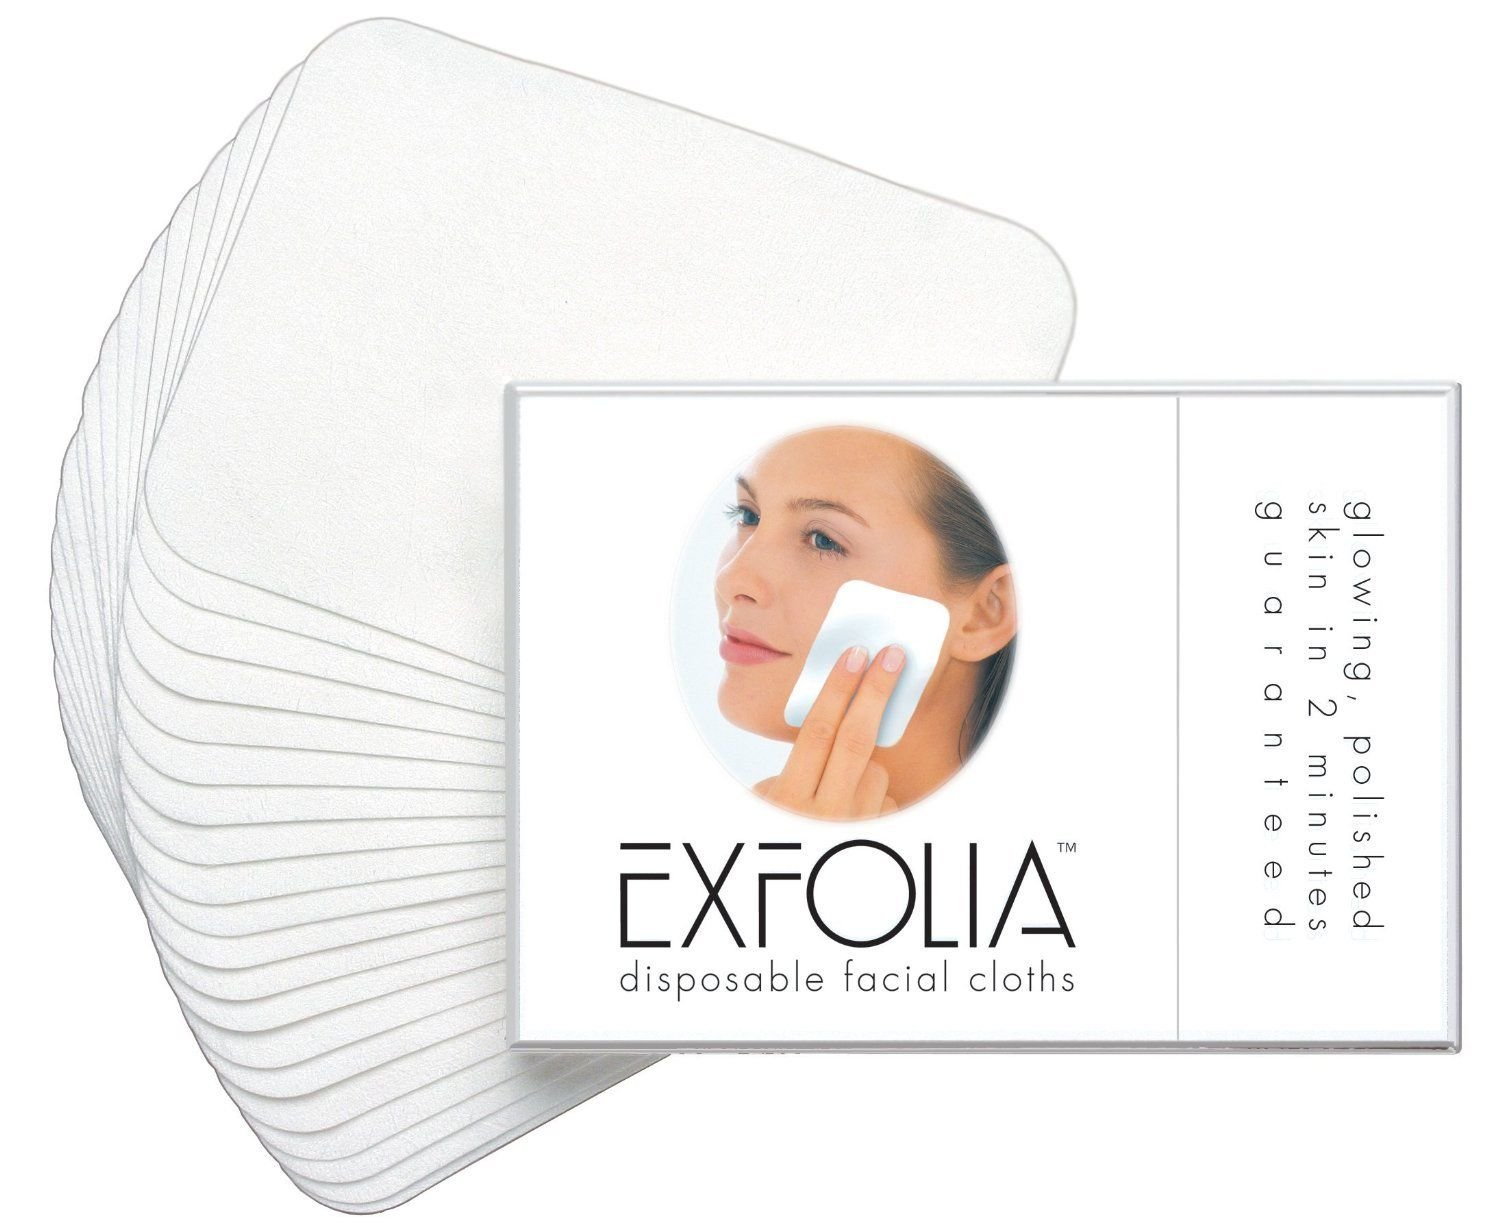 EXFOLIA Disposables Exfoliating Facial Cleansing Cloths, Pack of 20 Travel Pack